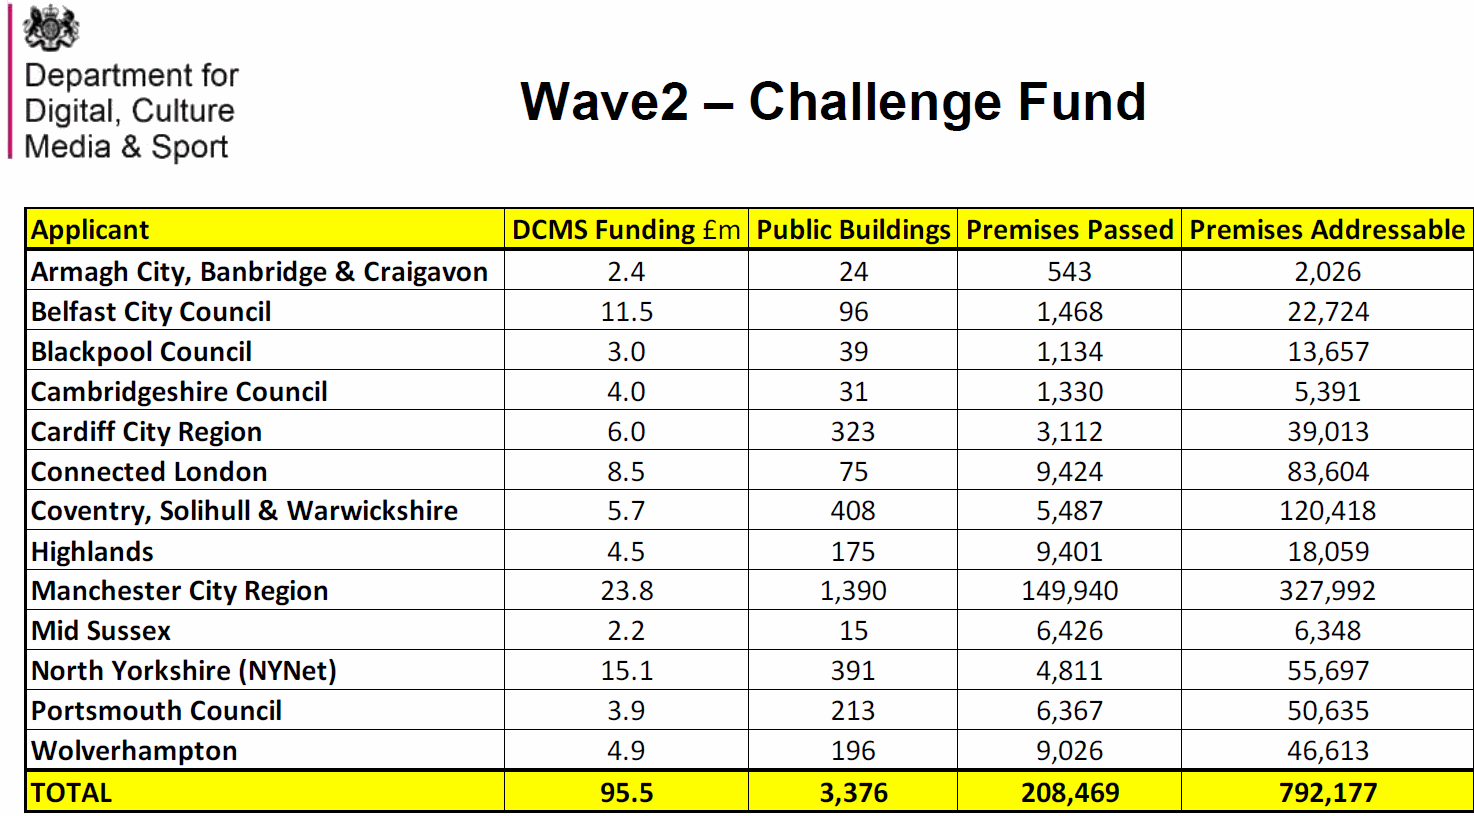 lffn wave 2 fund winners and coverage